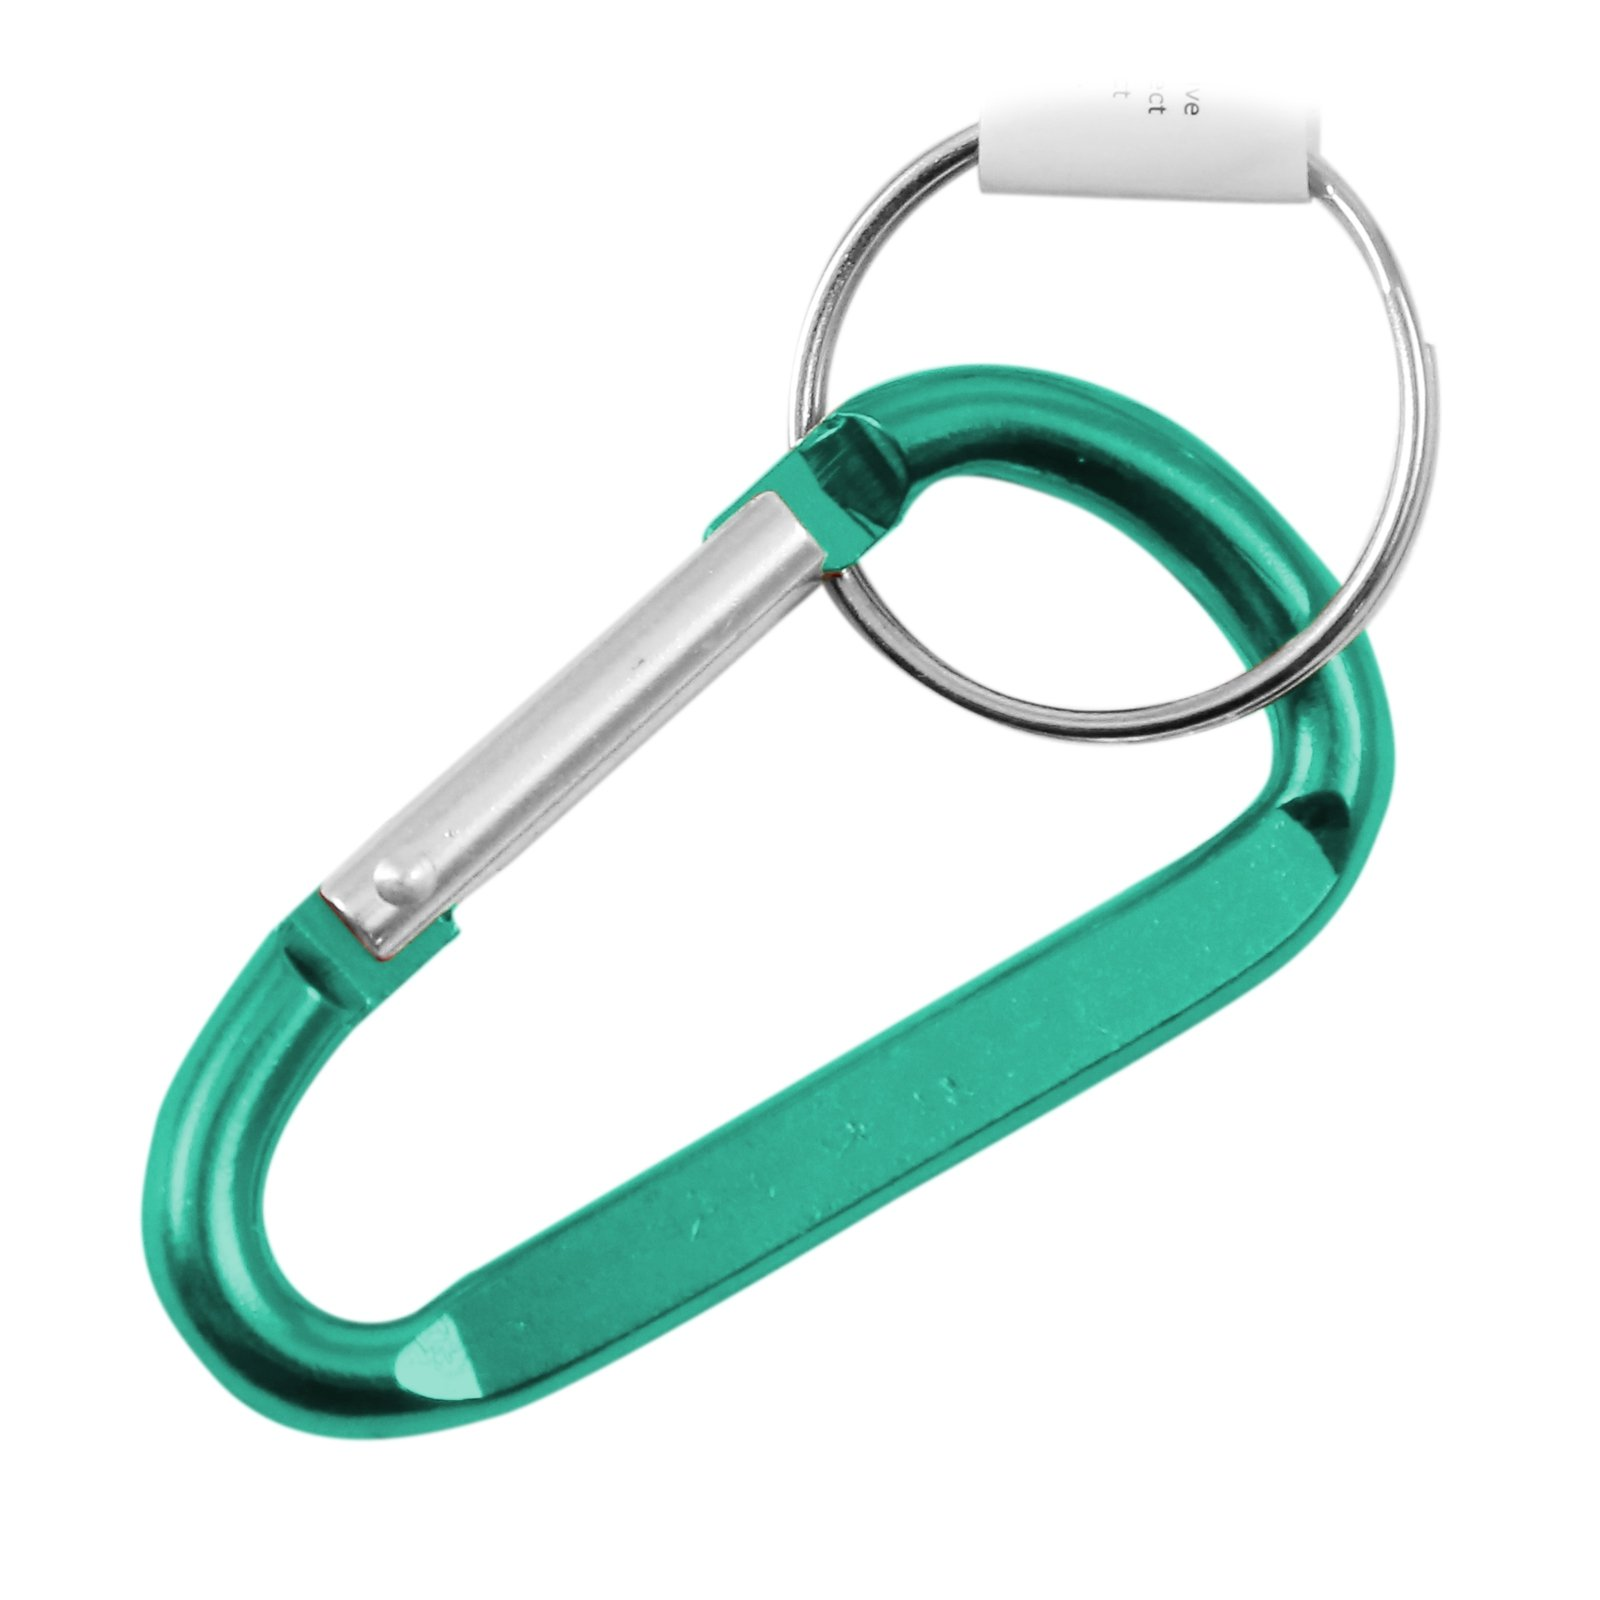 "7mm 2.75"" Medium Carabiner Key Chain - Green"